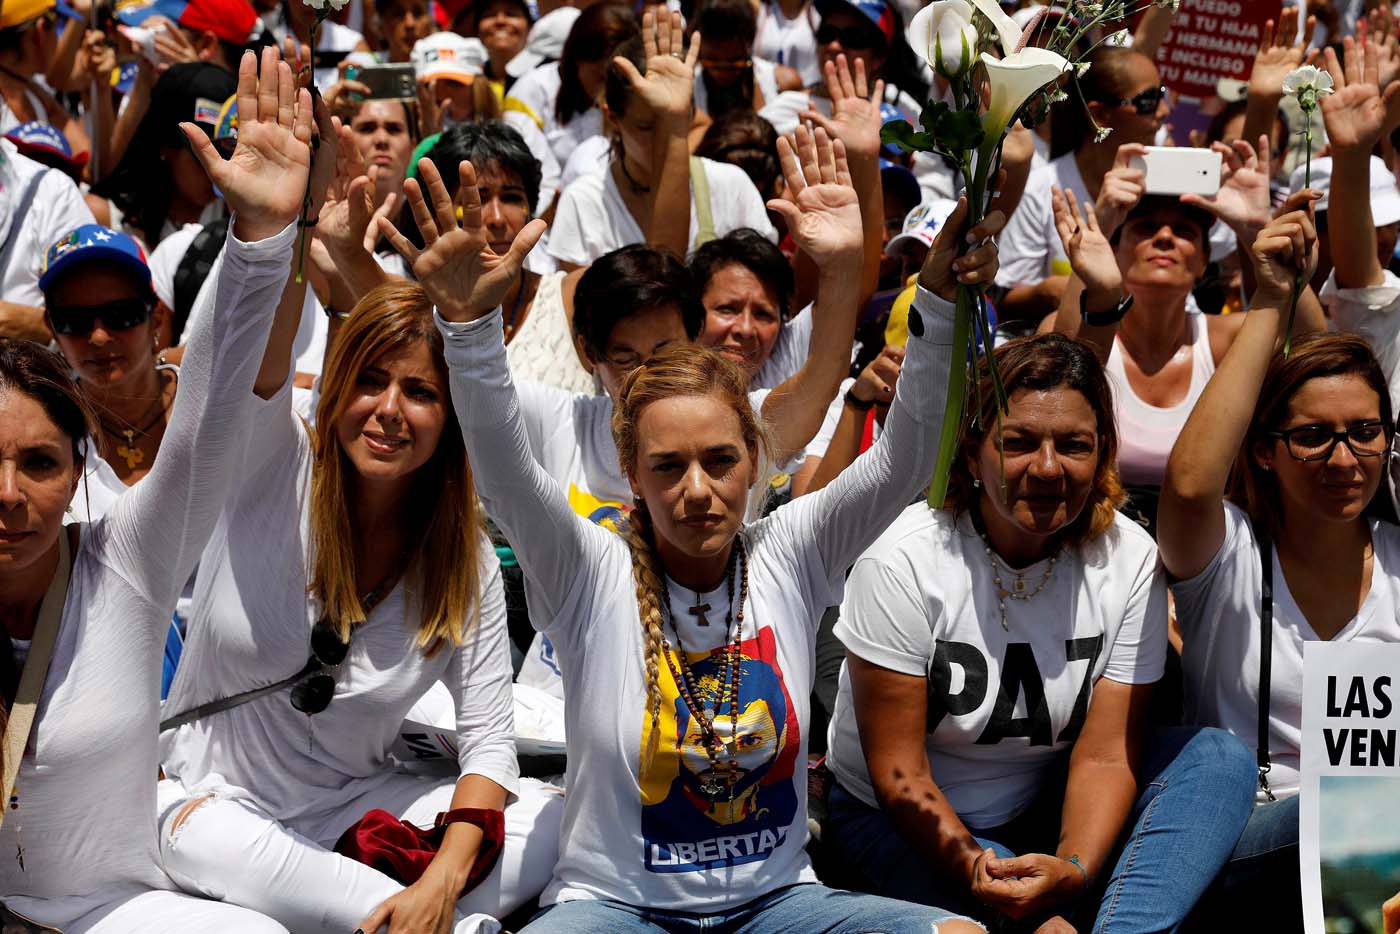 Lilian Tintori (C), wife of jailed Venezuelan opposition leader Leopoldo Lopez, lifts her hands during a women's march to protest against President Nicolas Maduro's government in Caracas, Venezuela May 6, 2017. REUTERS/Carlos Garcia Rawlins